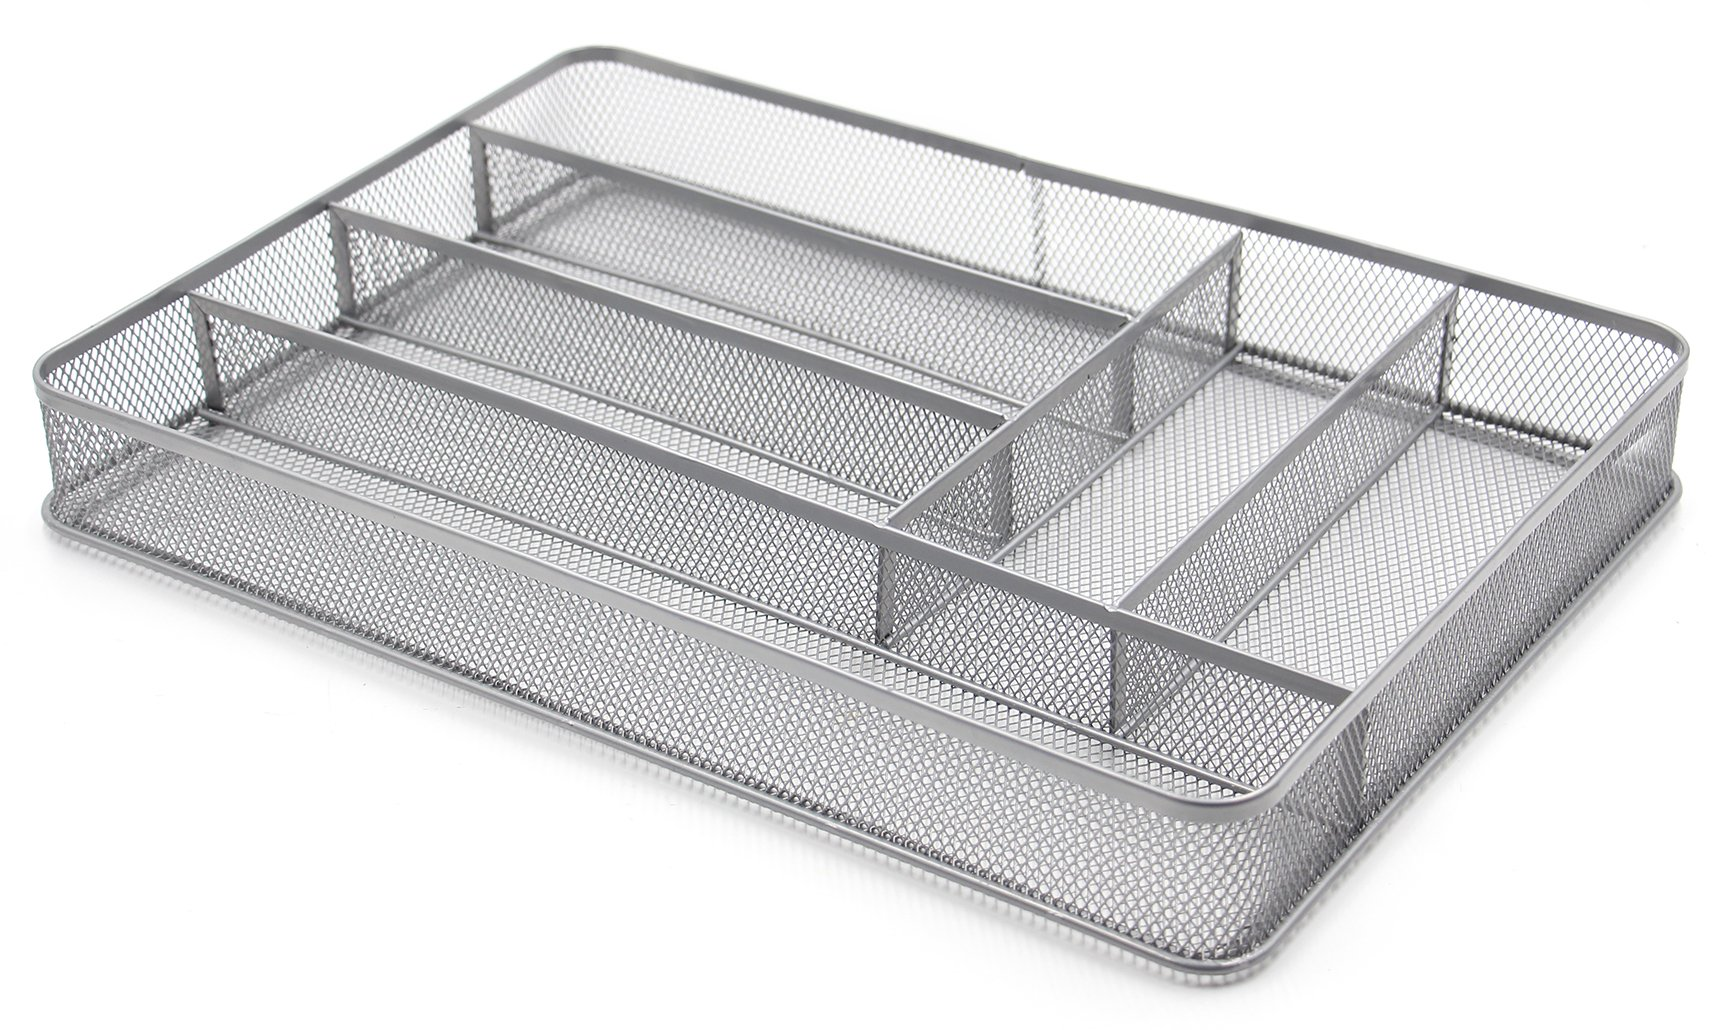 ESYLIFE Large Cutlery Storage Flatware Tray, 6 Compartments, Silver by Esy-Life (Image #1)